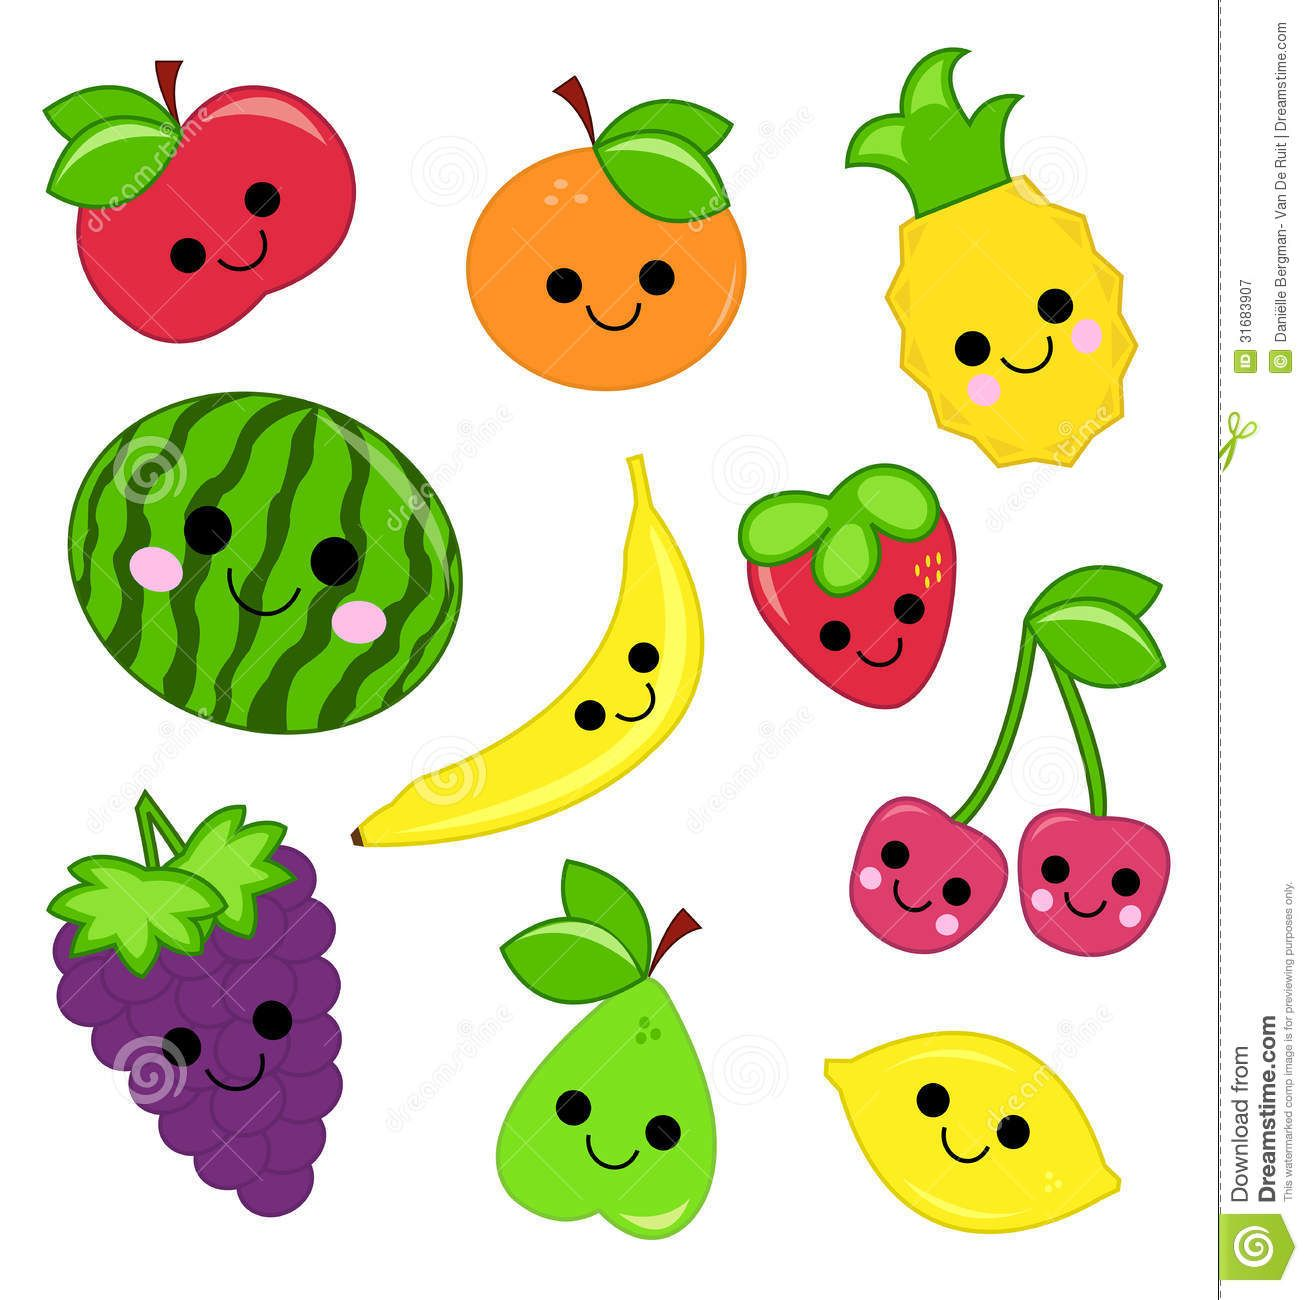 cute fruit pictures - Google Search | Manualidades, Frutas ...